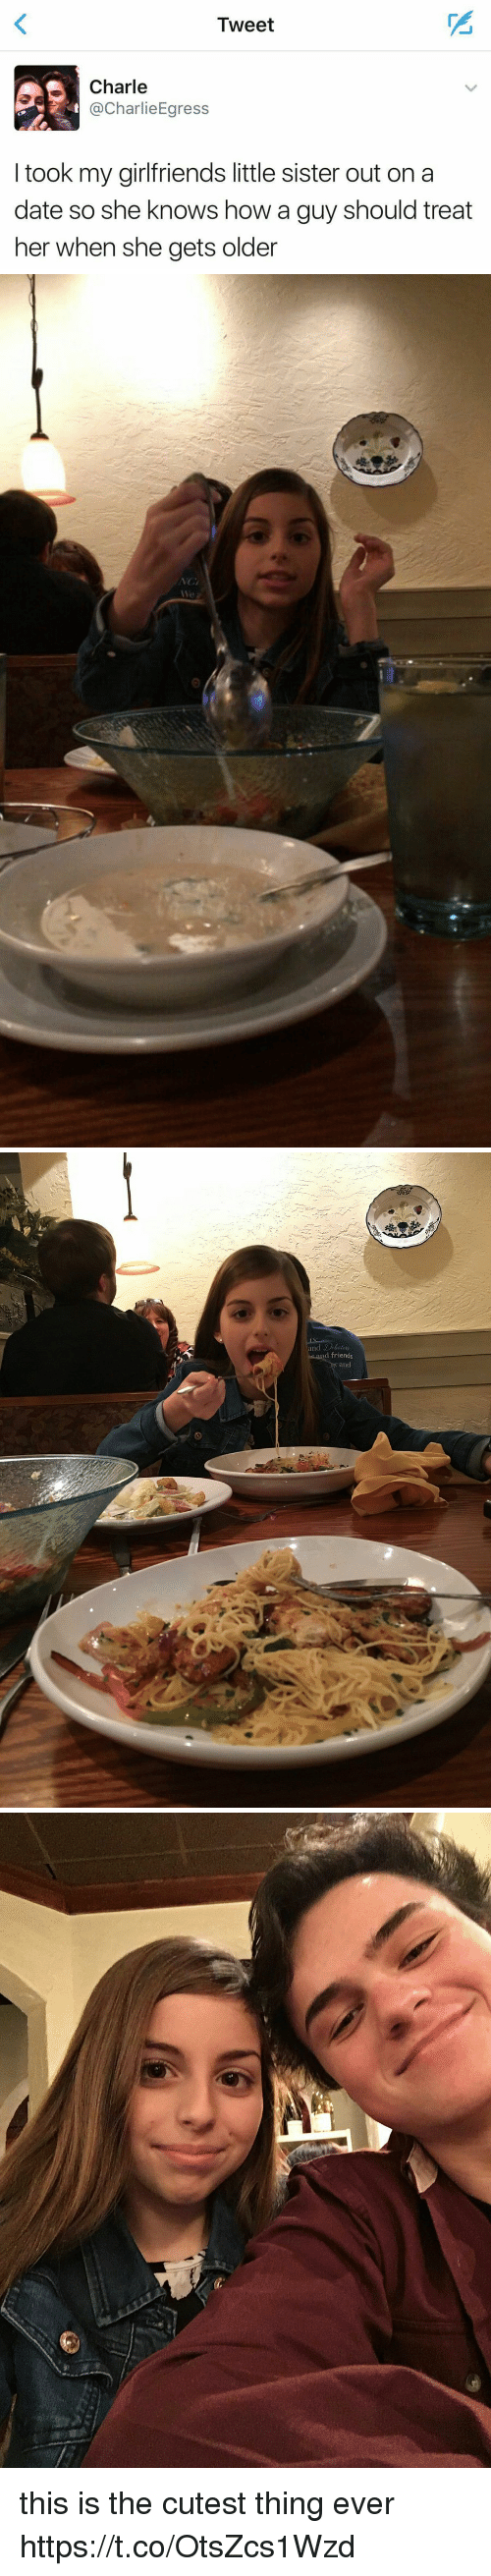 Friends, She Knows, and Date: Tweet  AS Charle  harlie Egress  took my girlfriends little sister out on a  date so she knows how a guy should treat  her when she gets older   and Debate  d friends  and   :WNES this is the cutest thing ever https://t.co/OtsZcs1Wzd